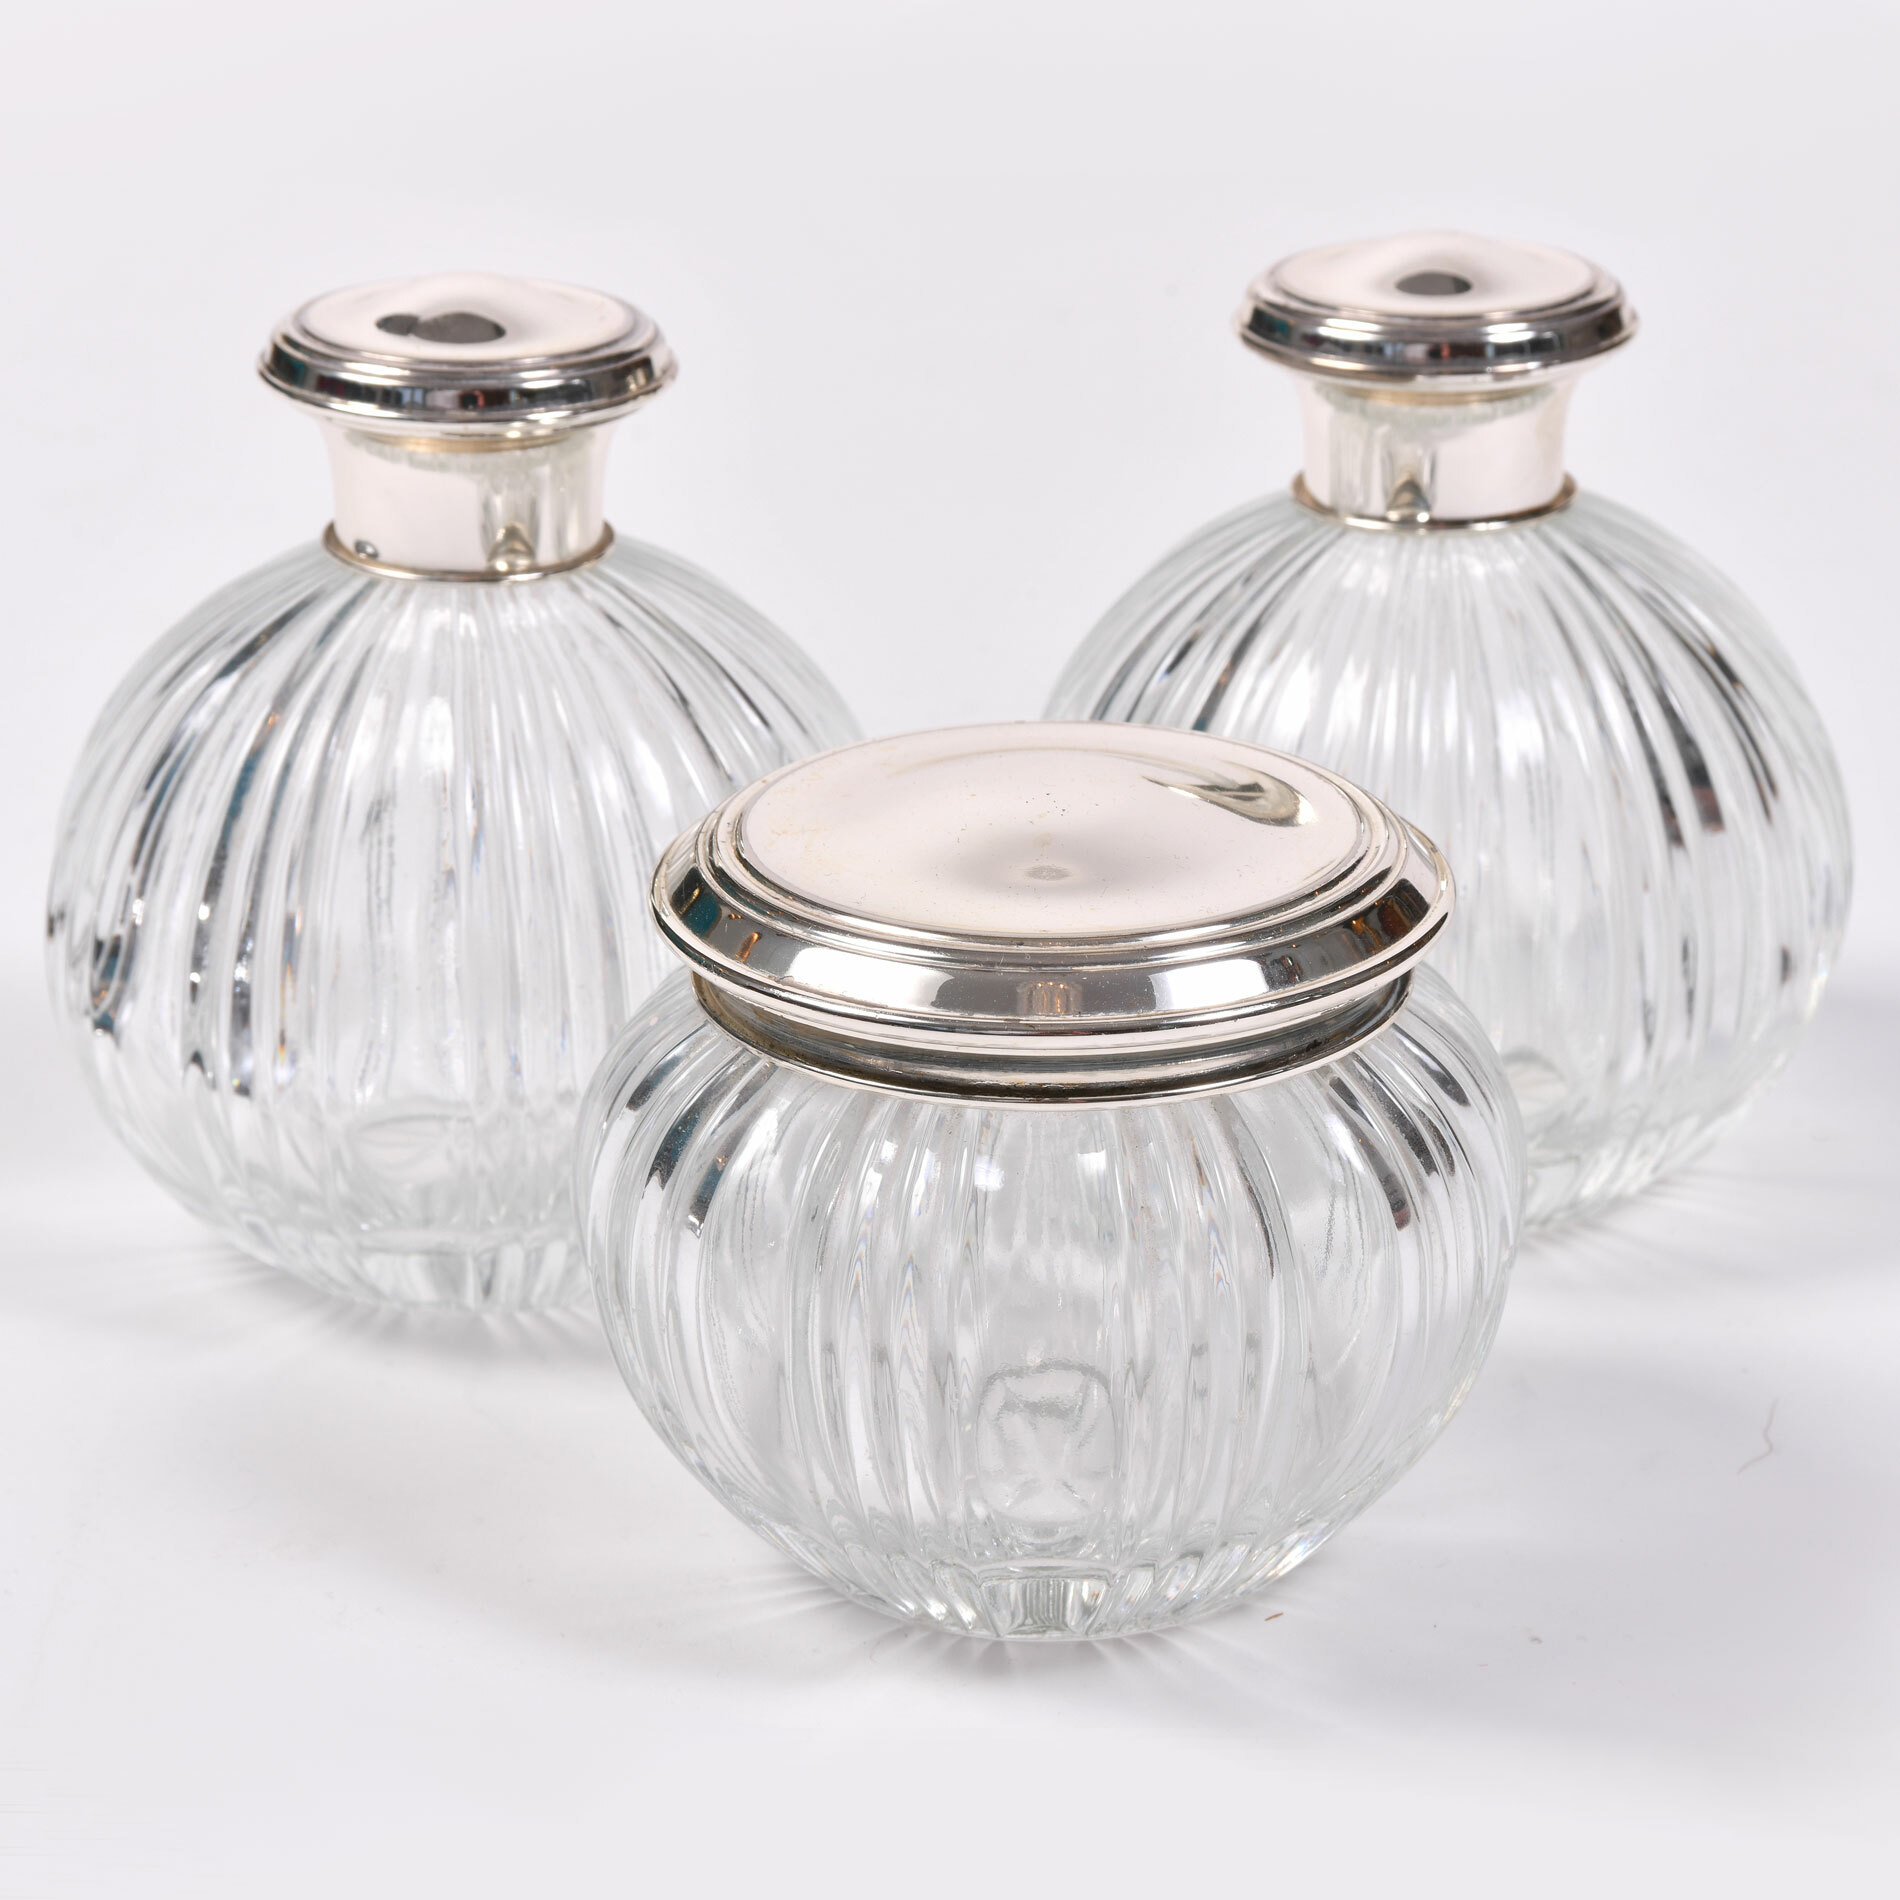 The image for Set 3 Scent Bottles 01